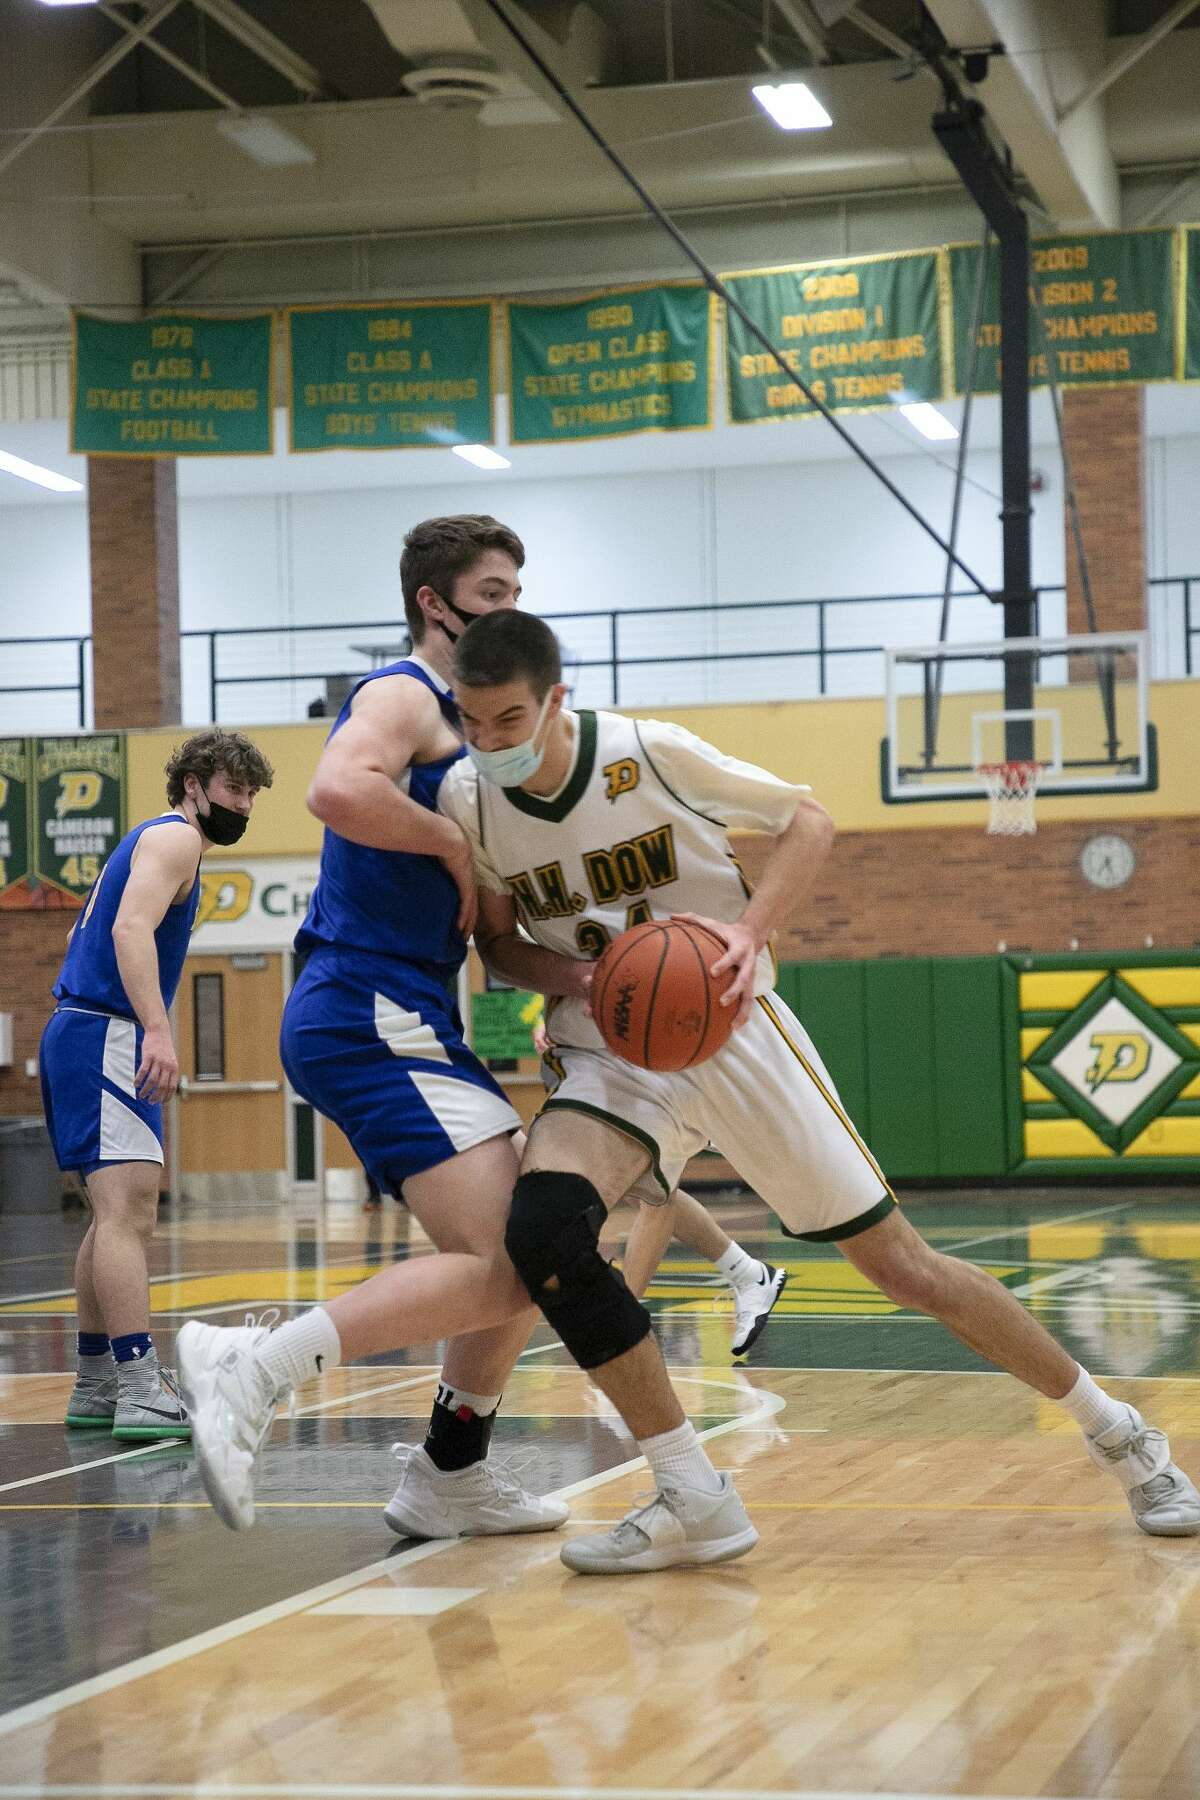 Dow's Nolan Fisher dribbles down the court during a game against Midland Friday, March 12, 2021 at H. H. Dow High School. (Doug Julian/for the Daily News)